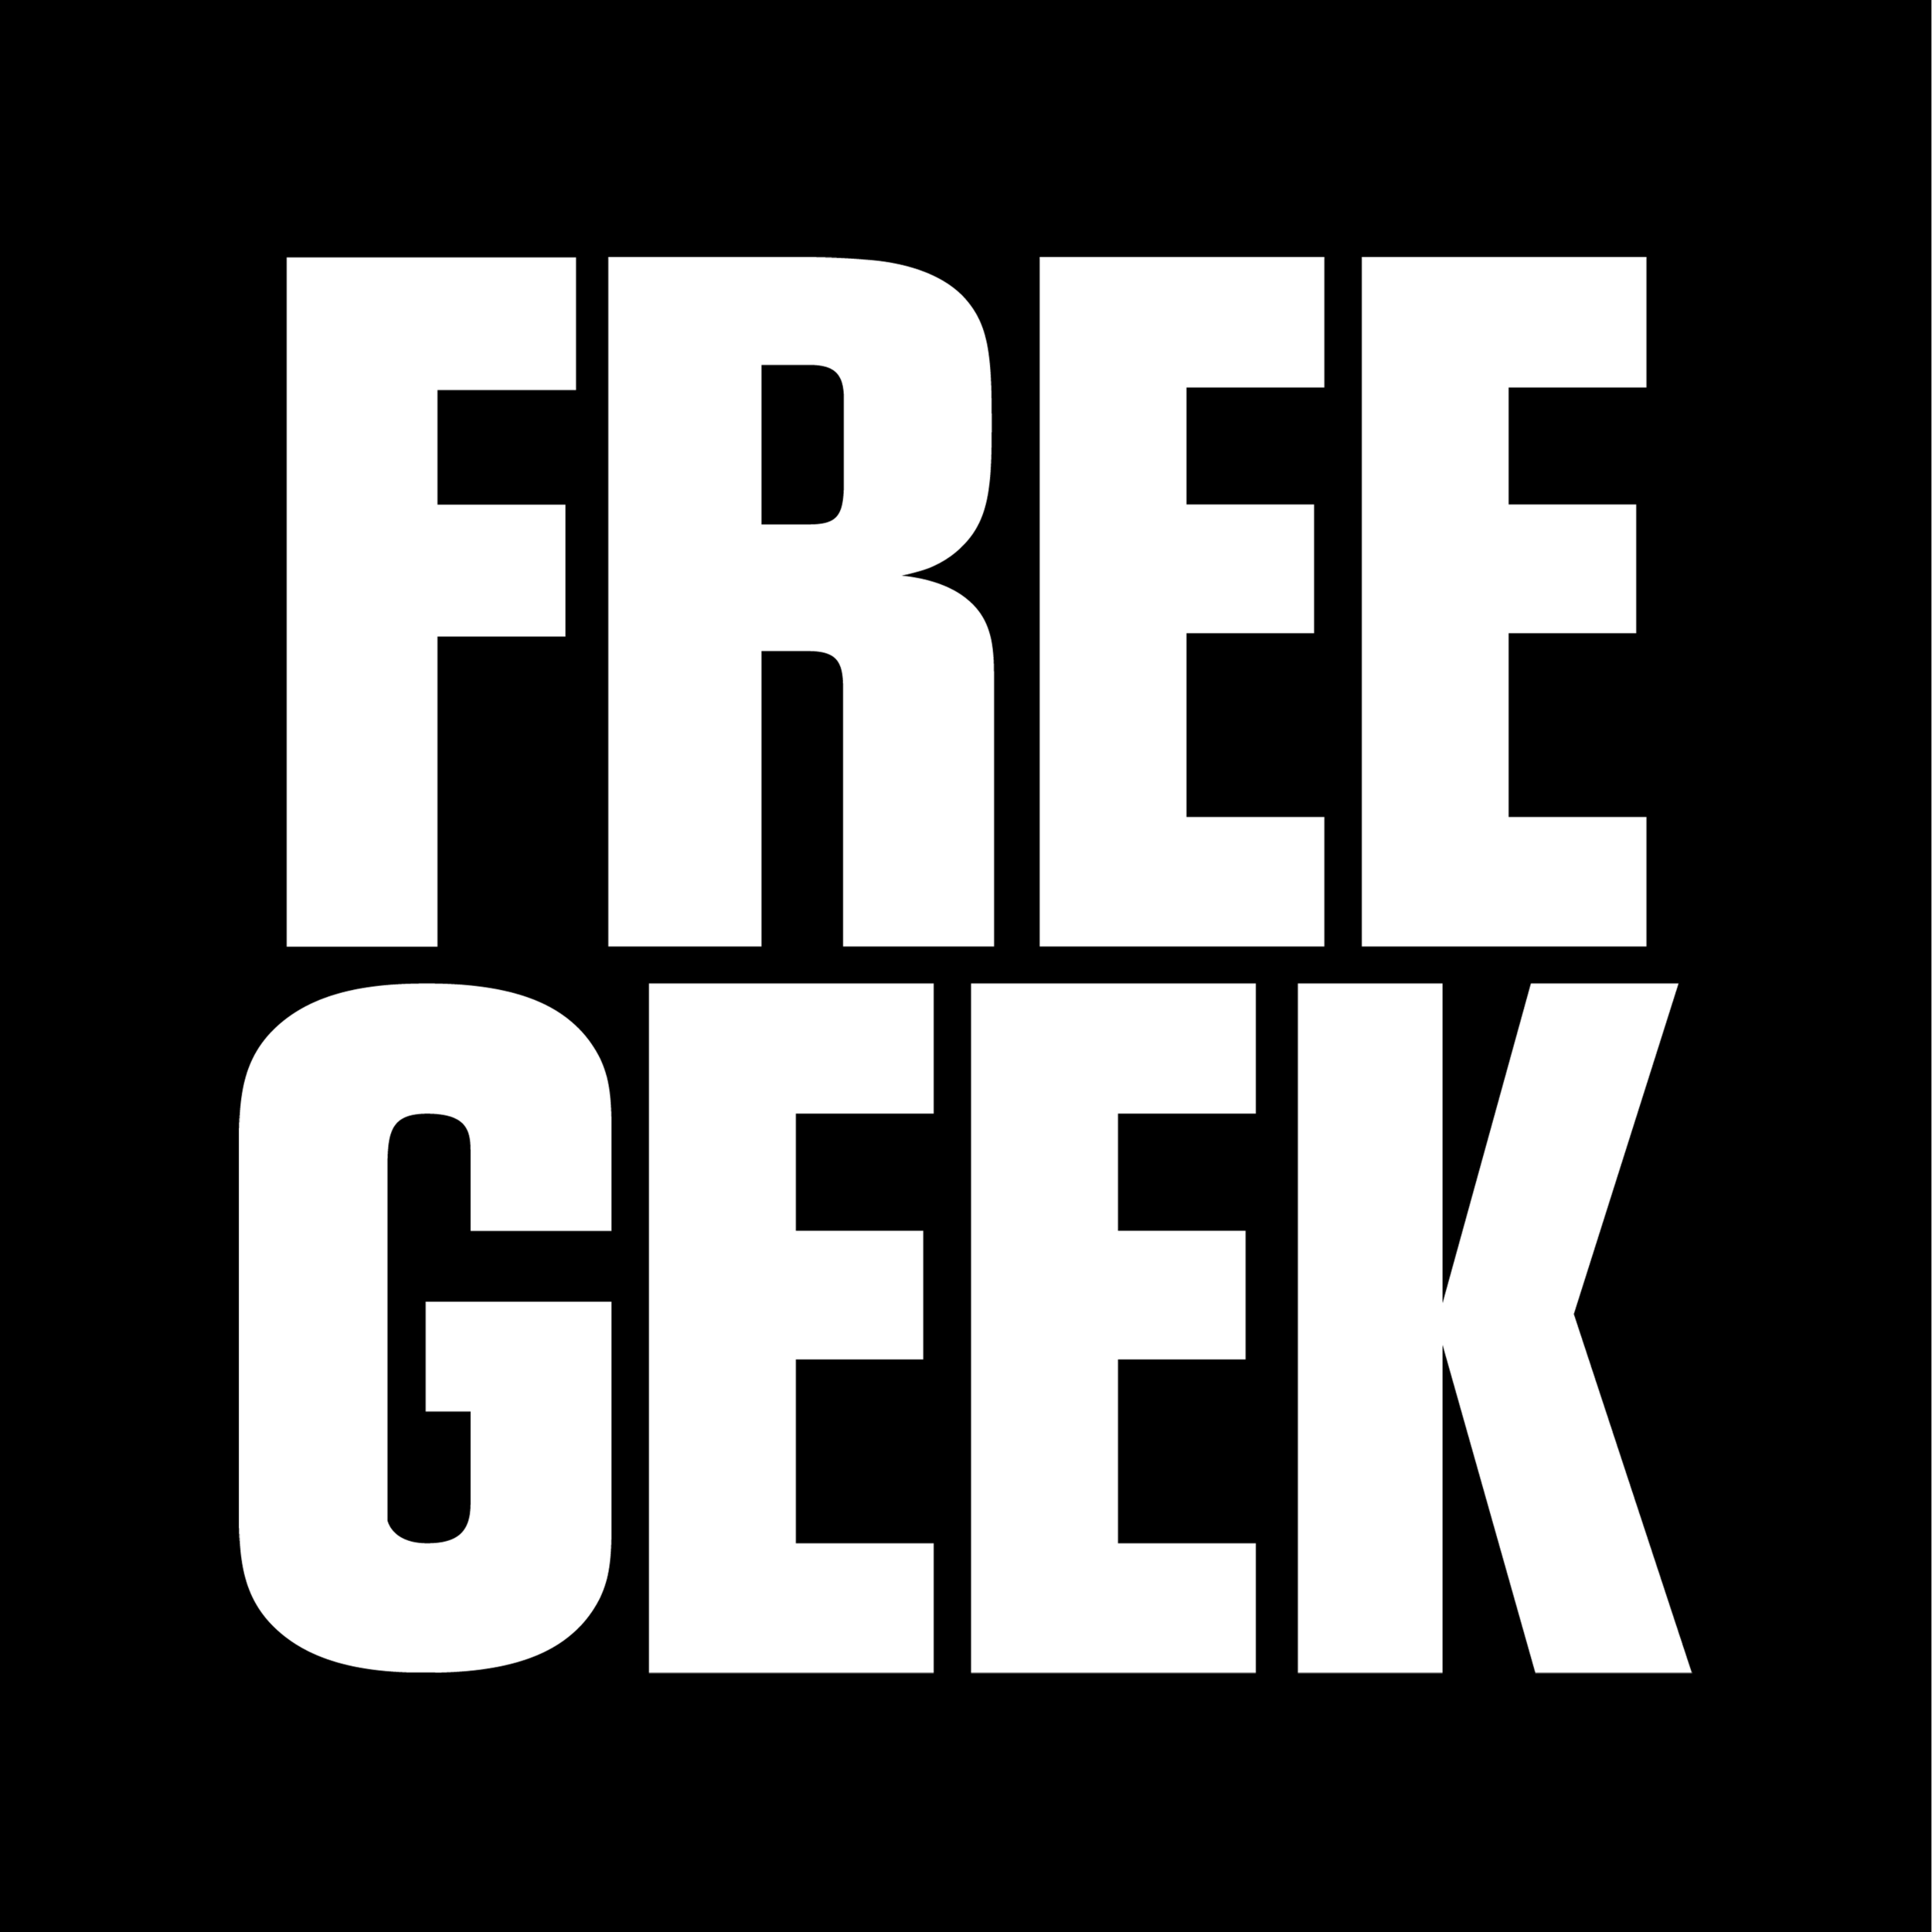 FreeGeek_logo-11x11.png